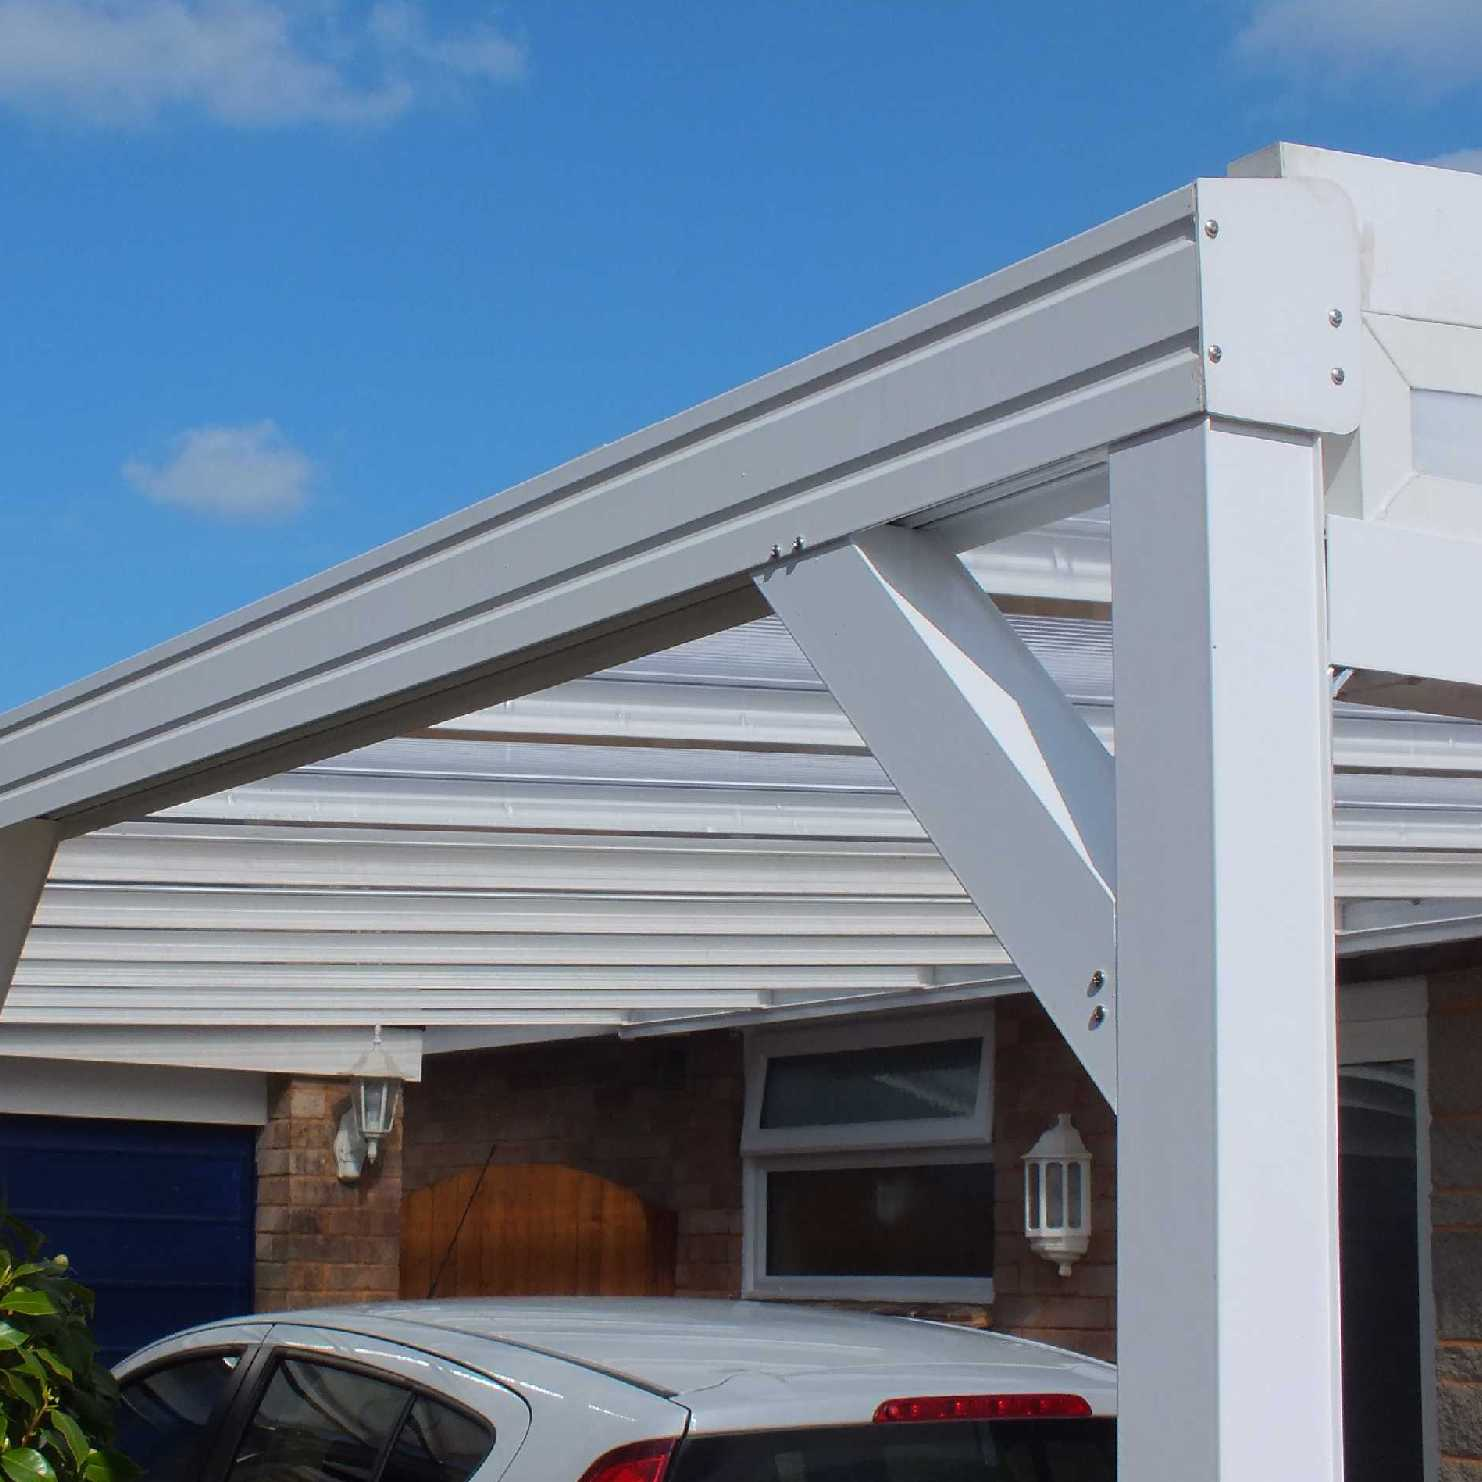 Buy Omega Smart White Lean-To Canopy with 16mm Polycarbonate Glazing - 7.8m (W) x 4.0m (P), (4) Supporting Posts online today